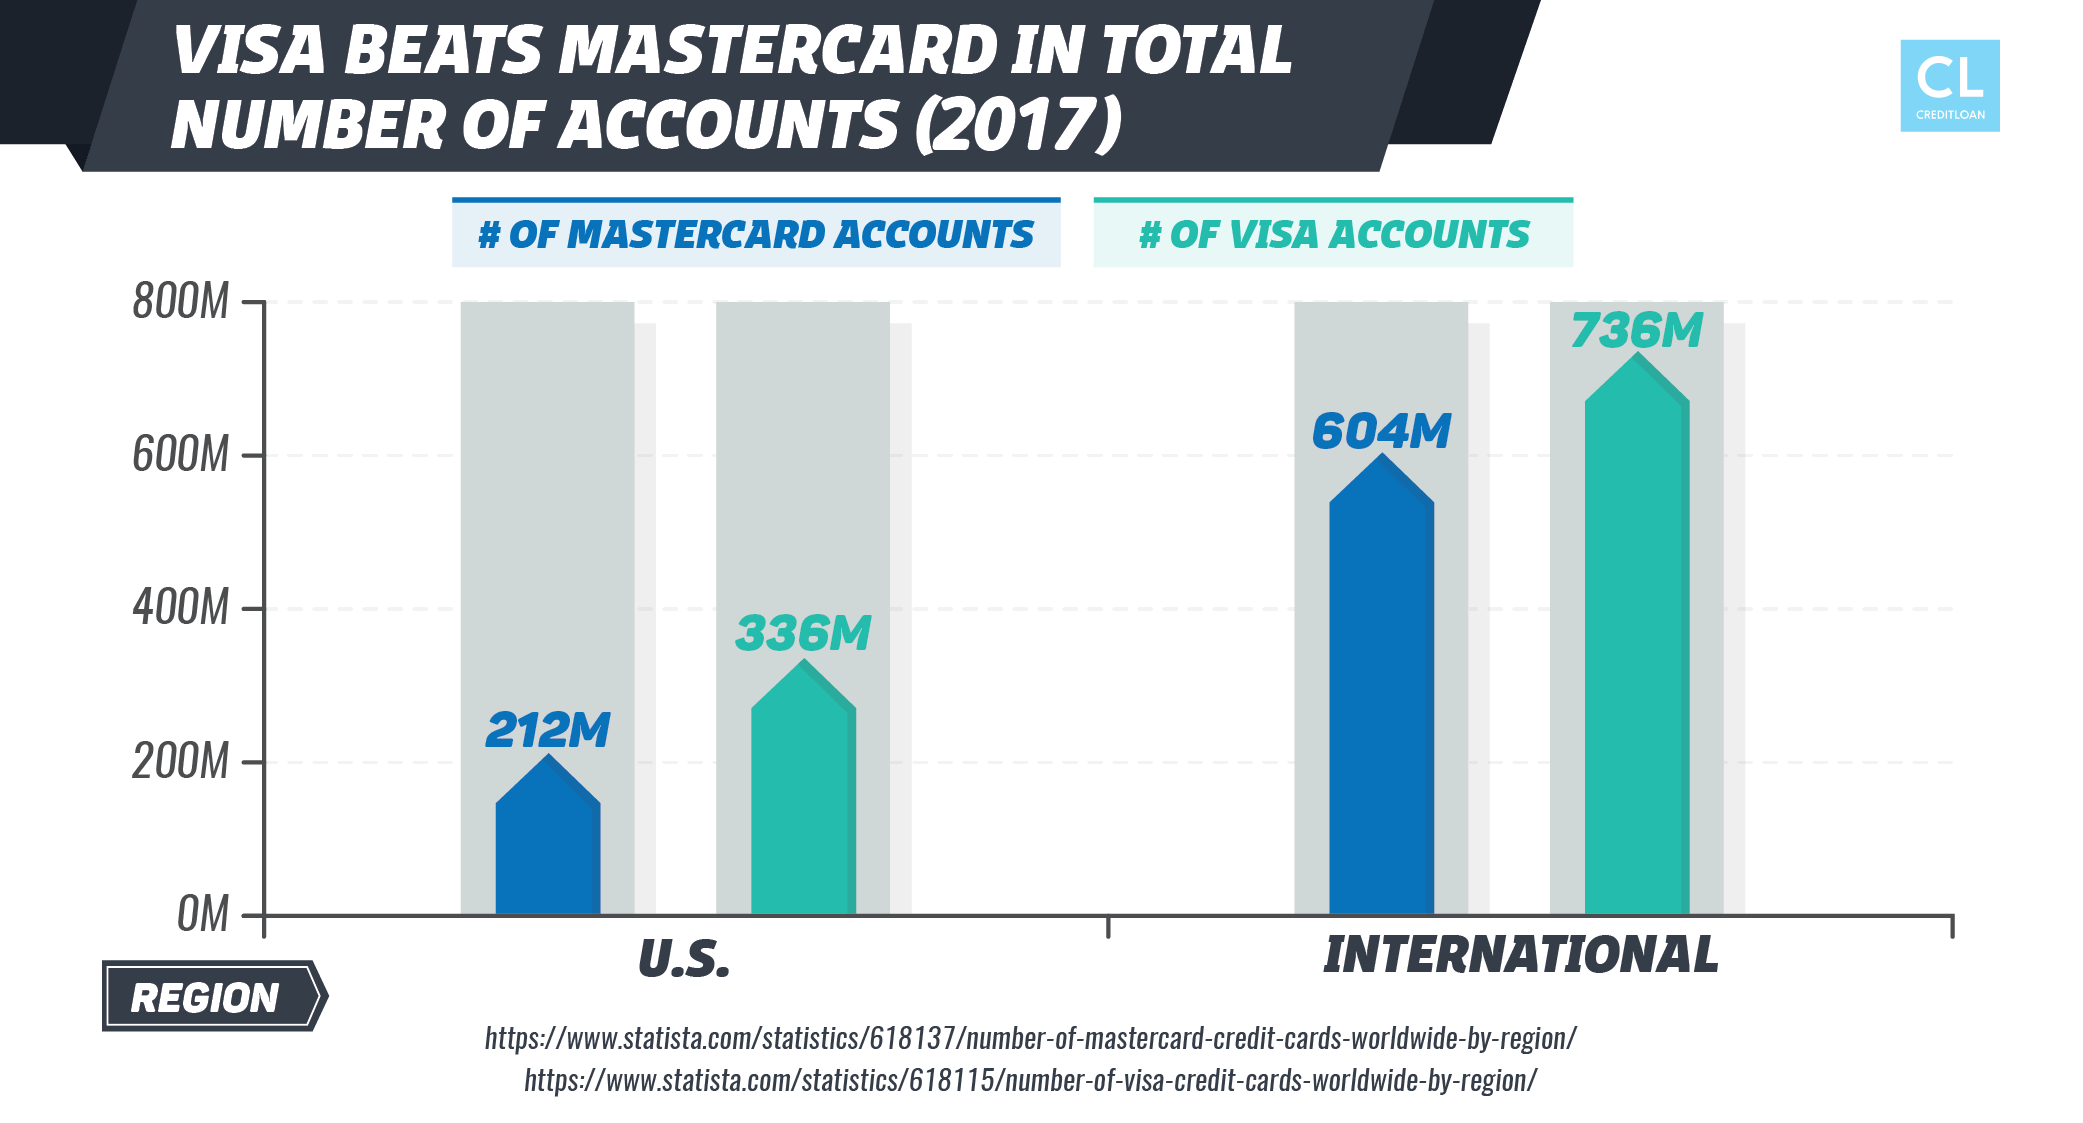 Visa Beats Mastercard in Total Number of Accounts